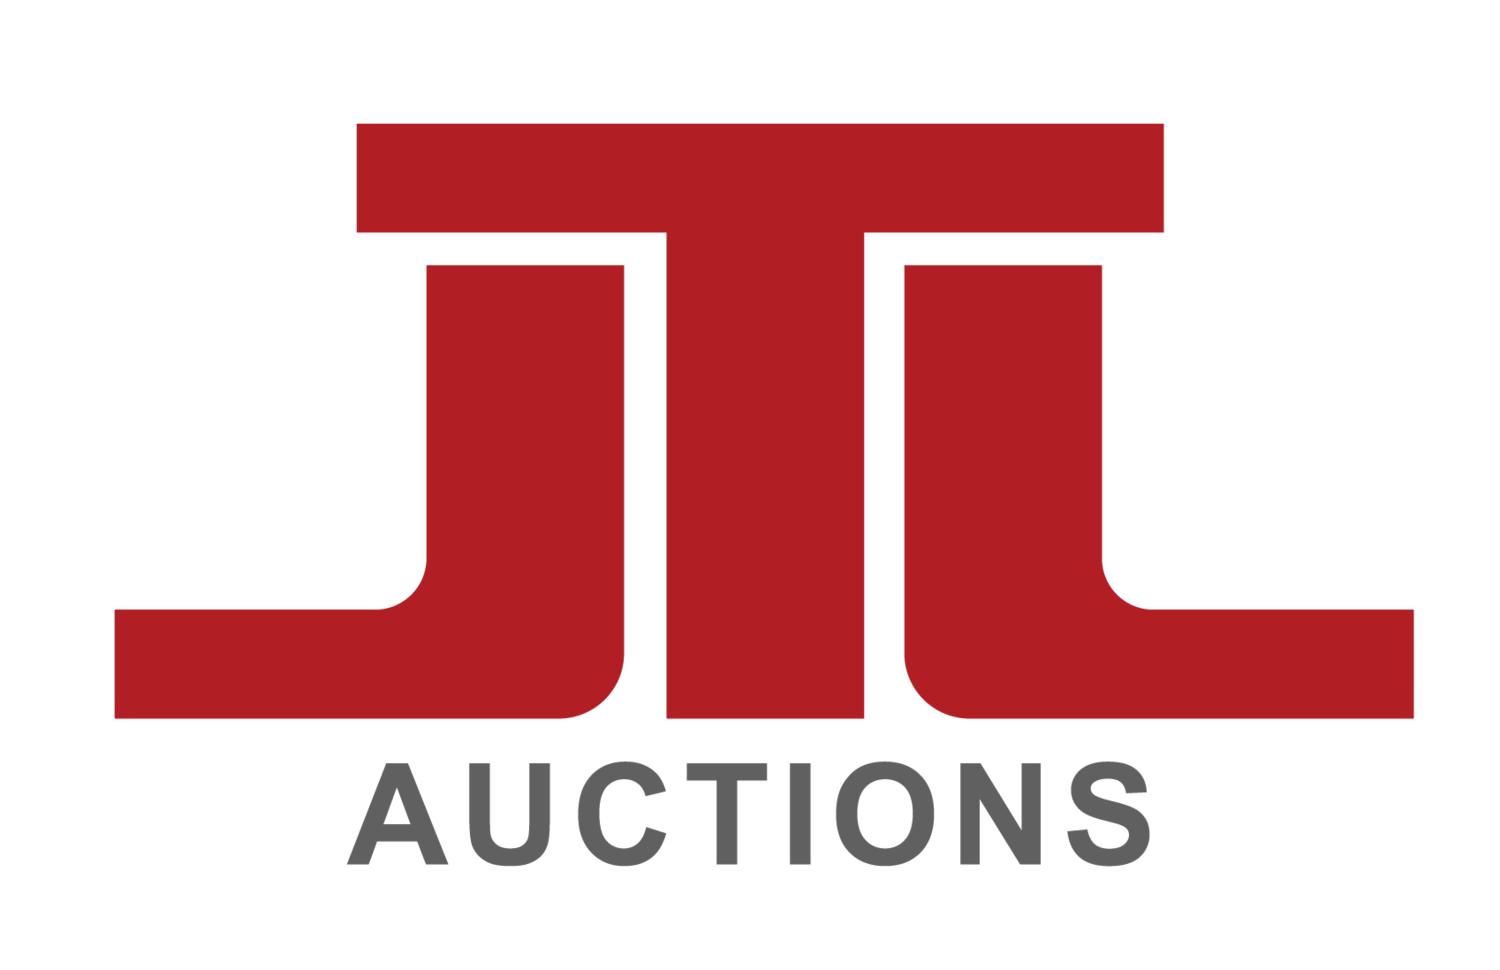 JTL Auctions